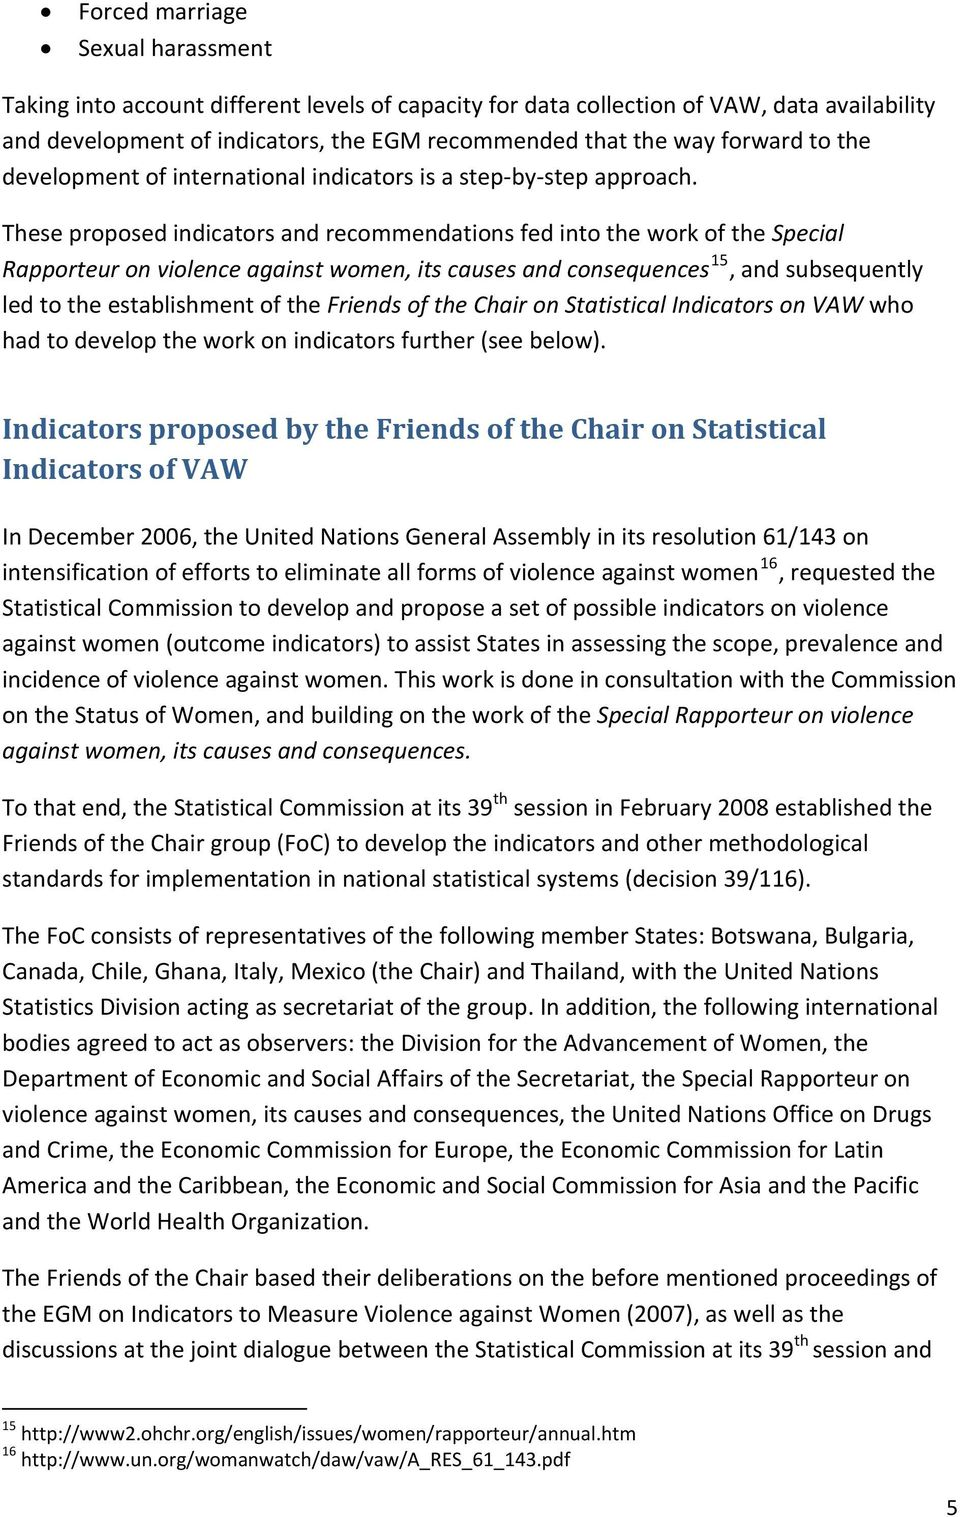 These proposed indicators and recommendations fed into the work of the Special Rapporteur on violence against women, its causes and consequences 15, and subsequently led to the establishment of the